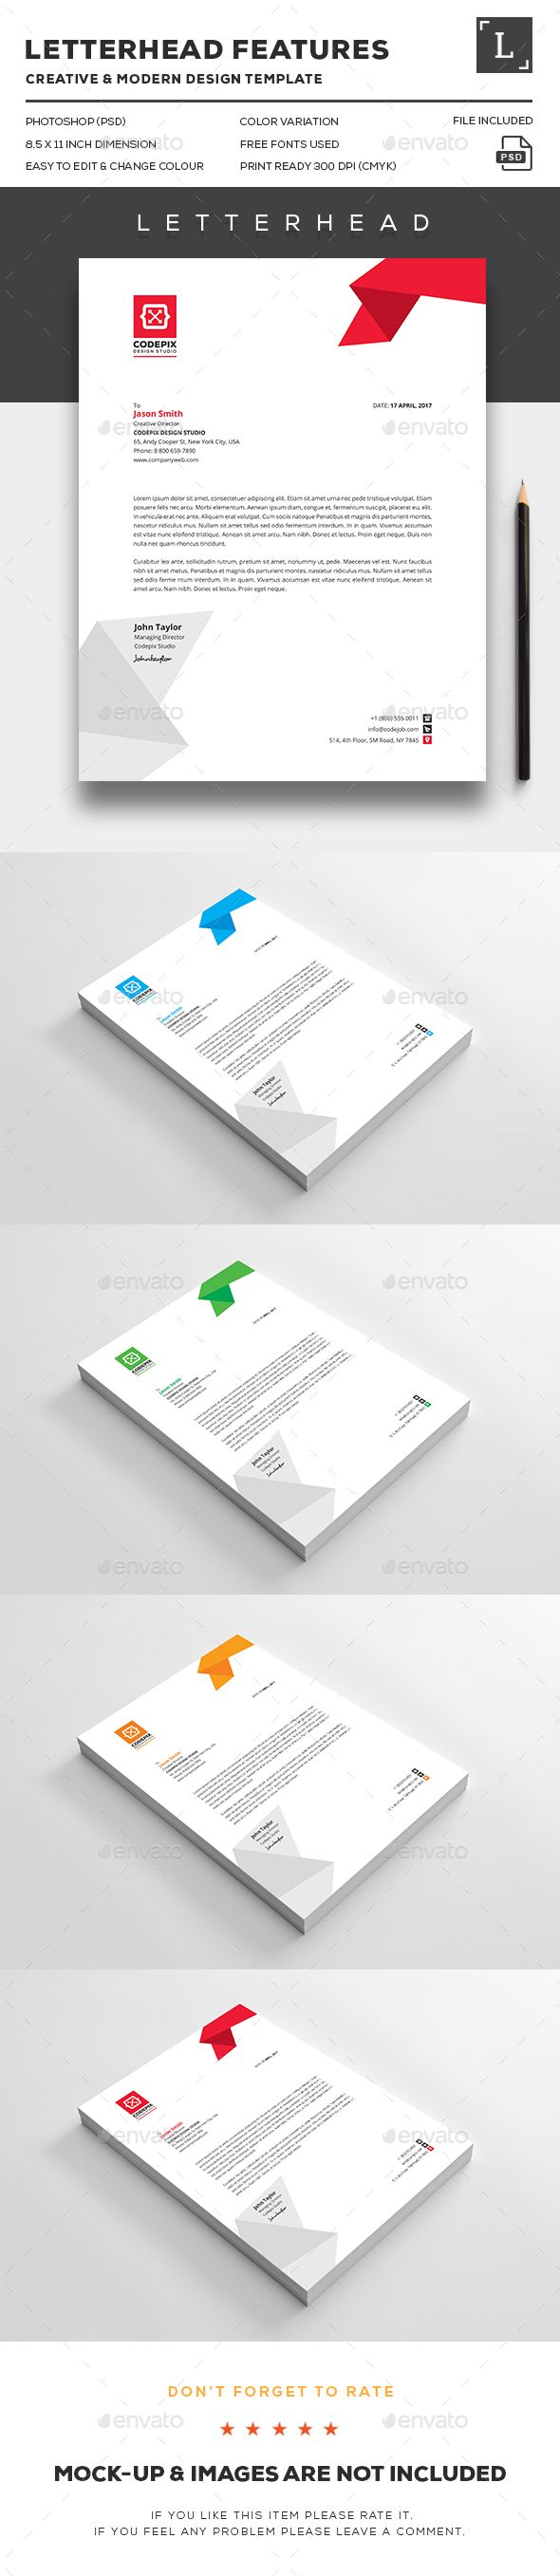 Business Letterhead Design Template - Stationery Print Template PSD. Download here: http://graphicriver.net/item/business-letterhead/16391027?ref=yinkira